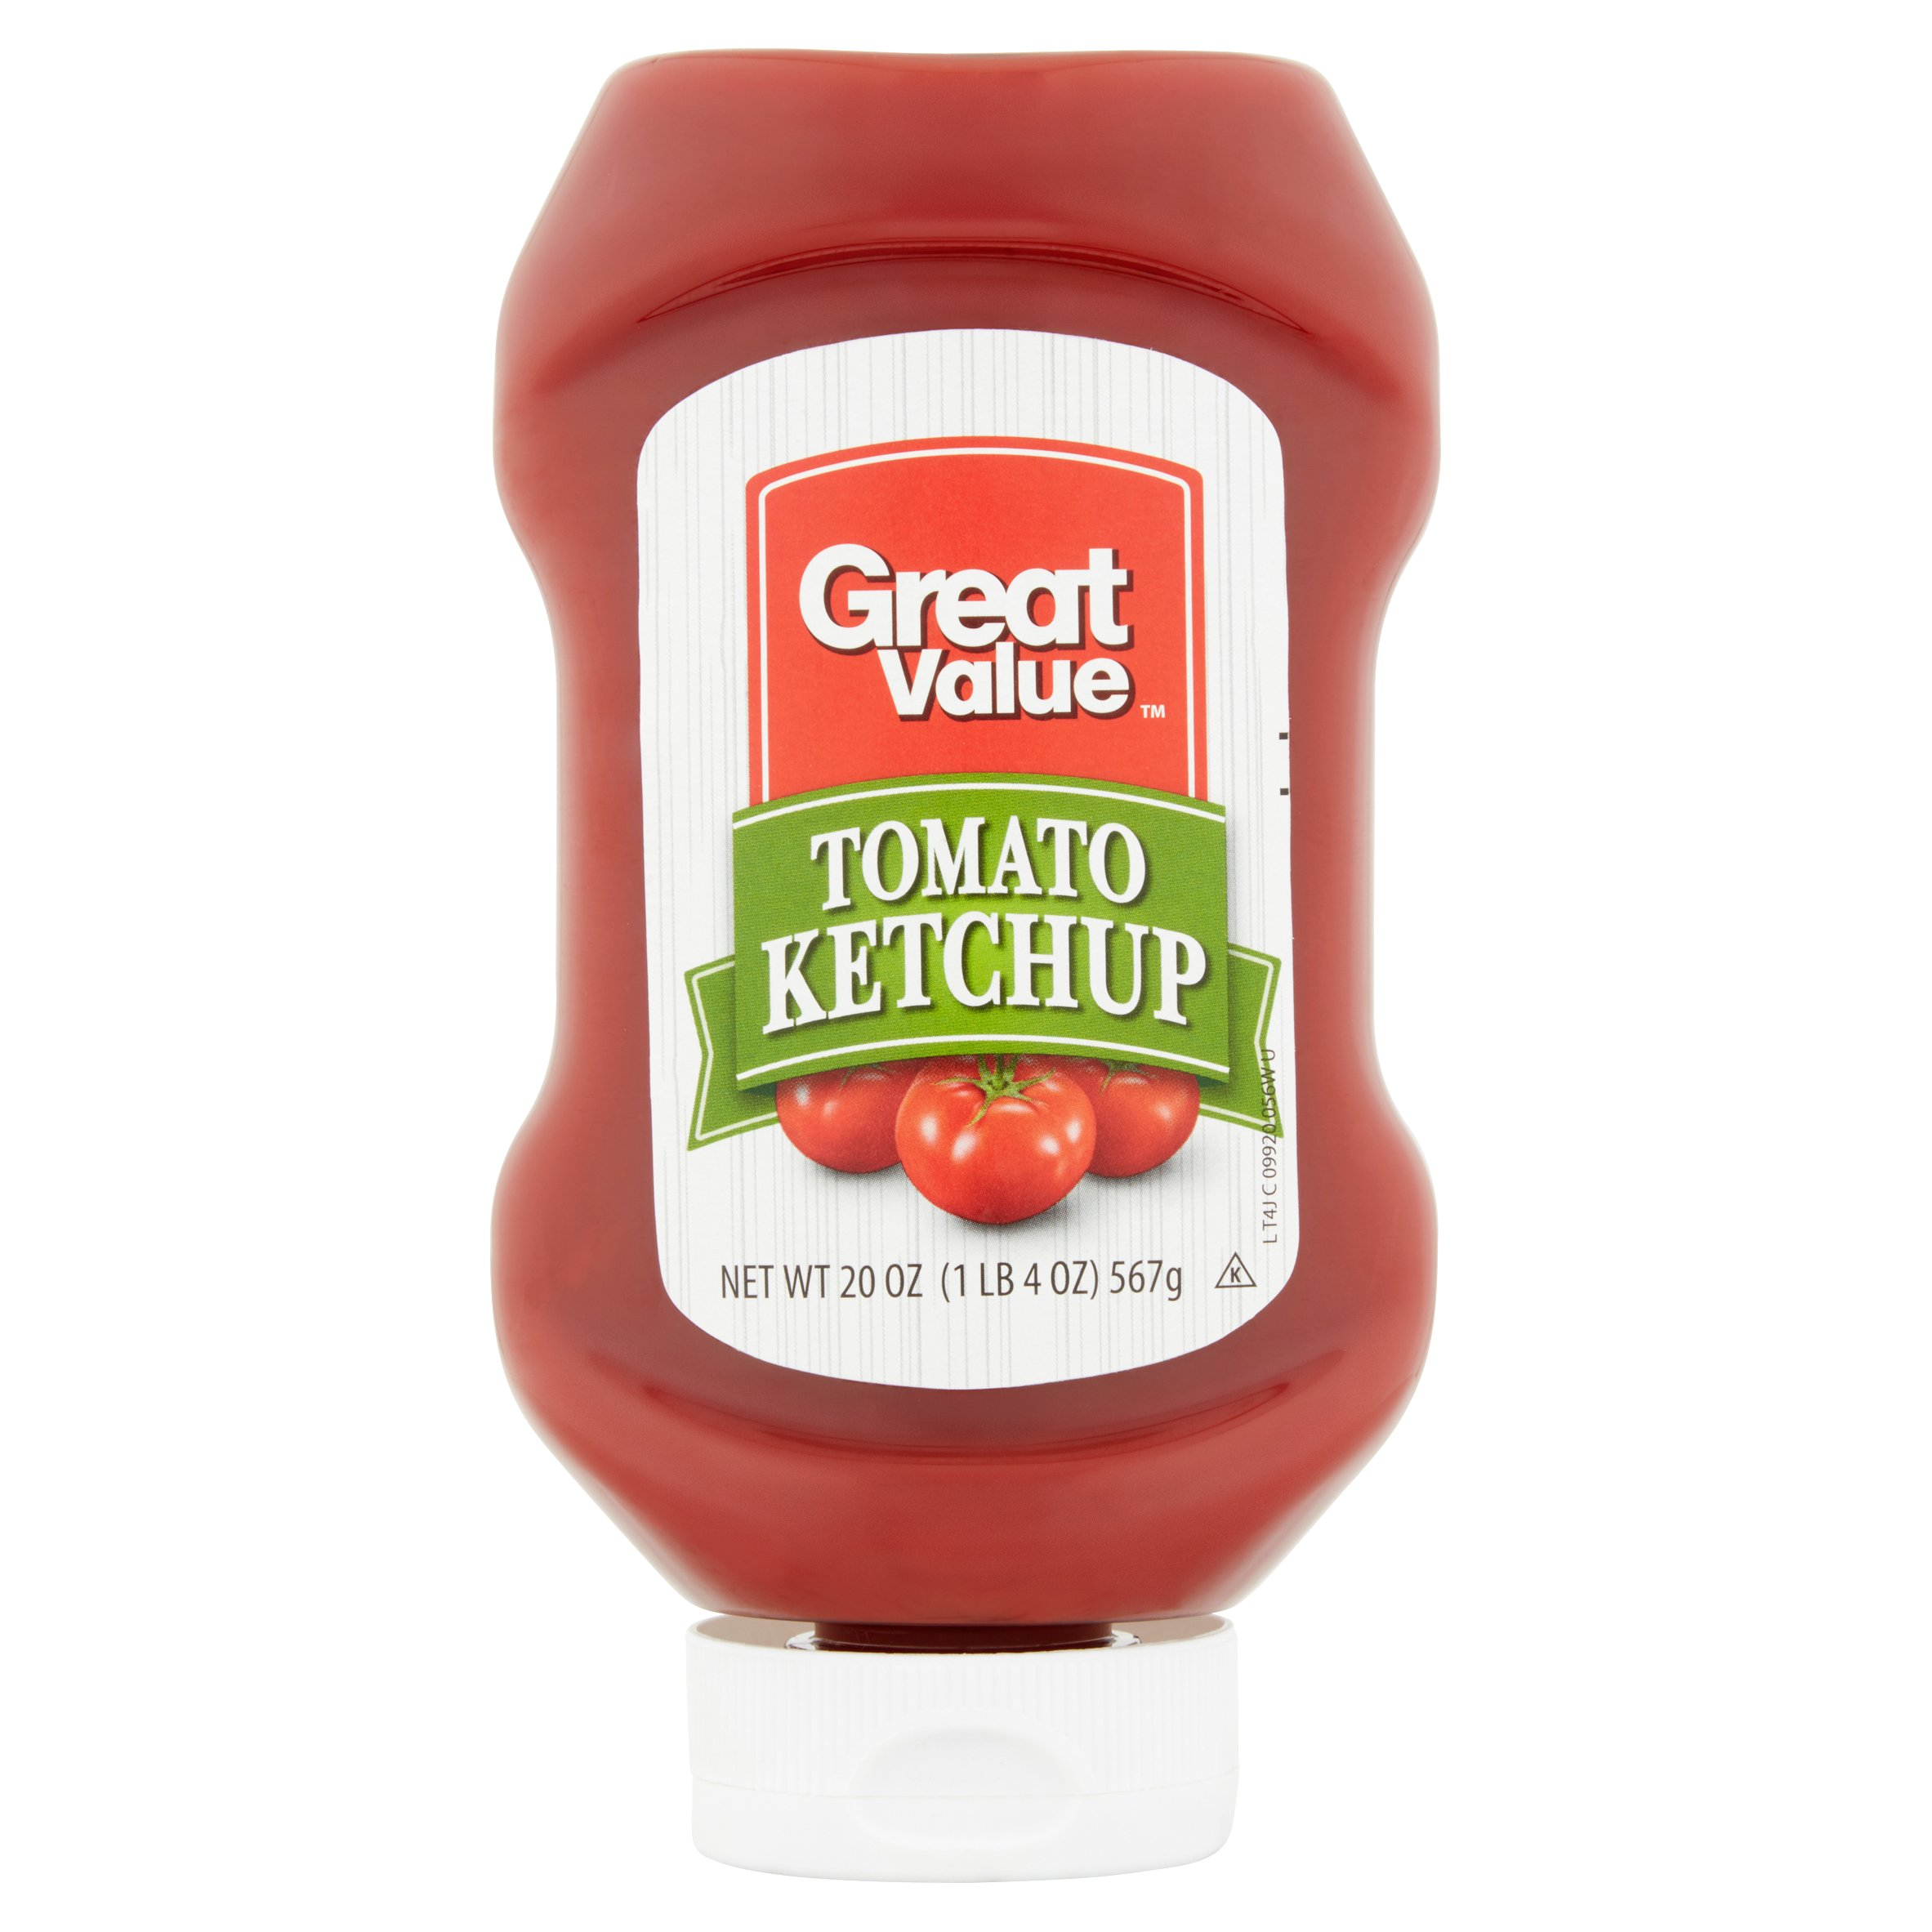 Great Value Tomato Ketchup, 20 oz